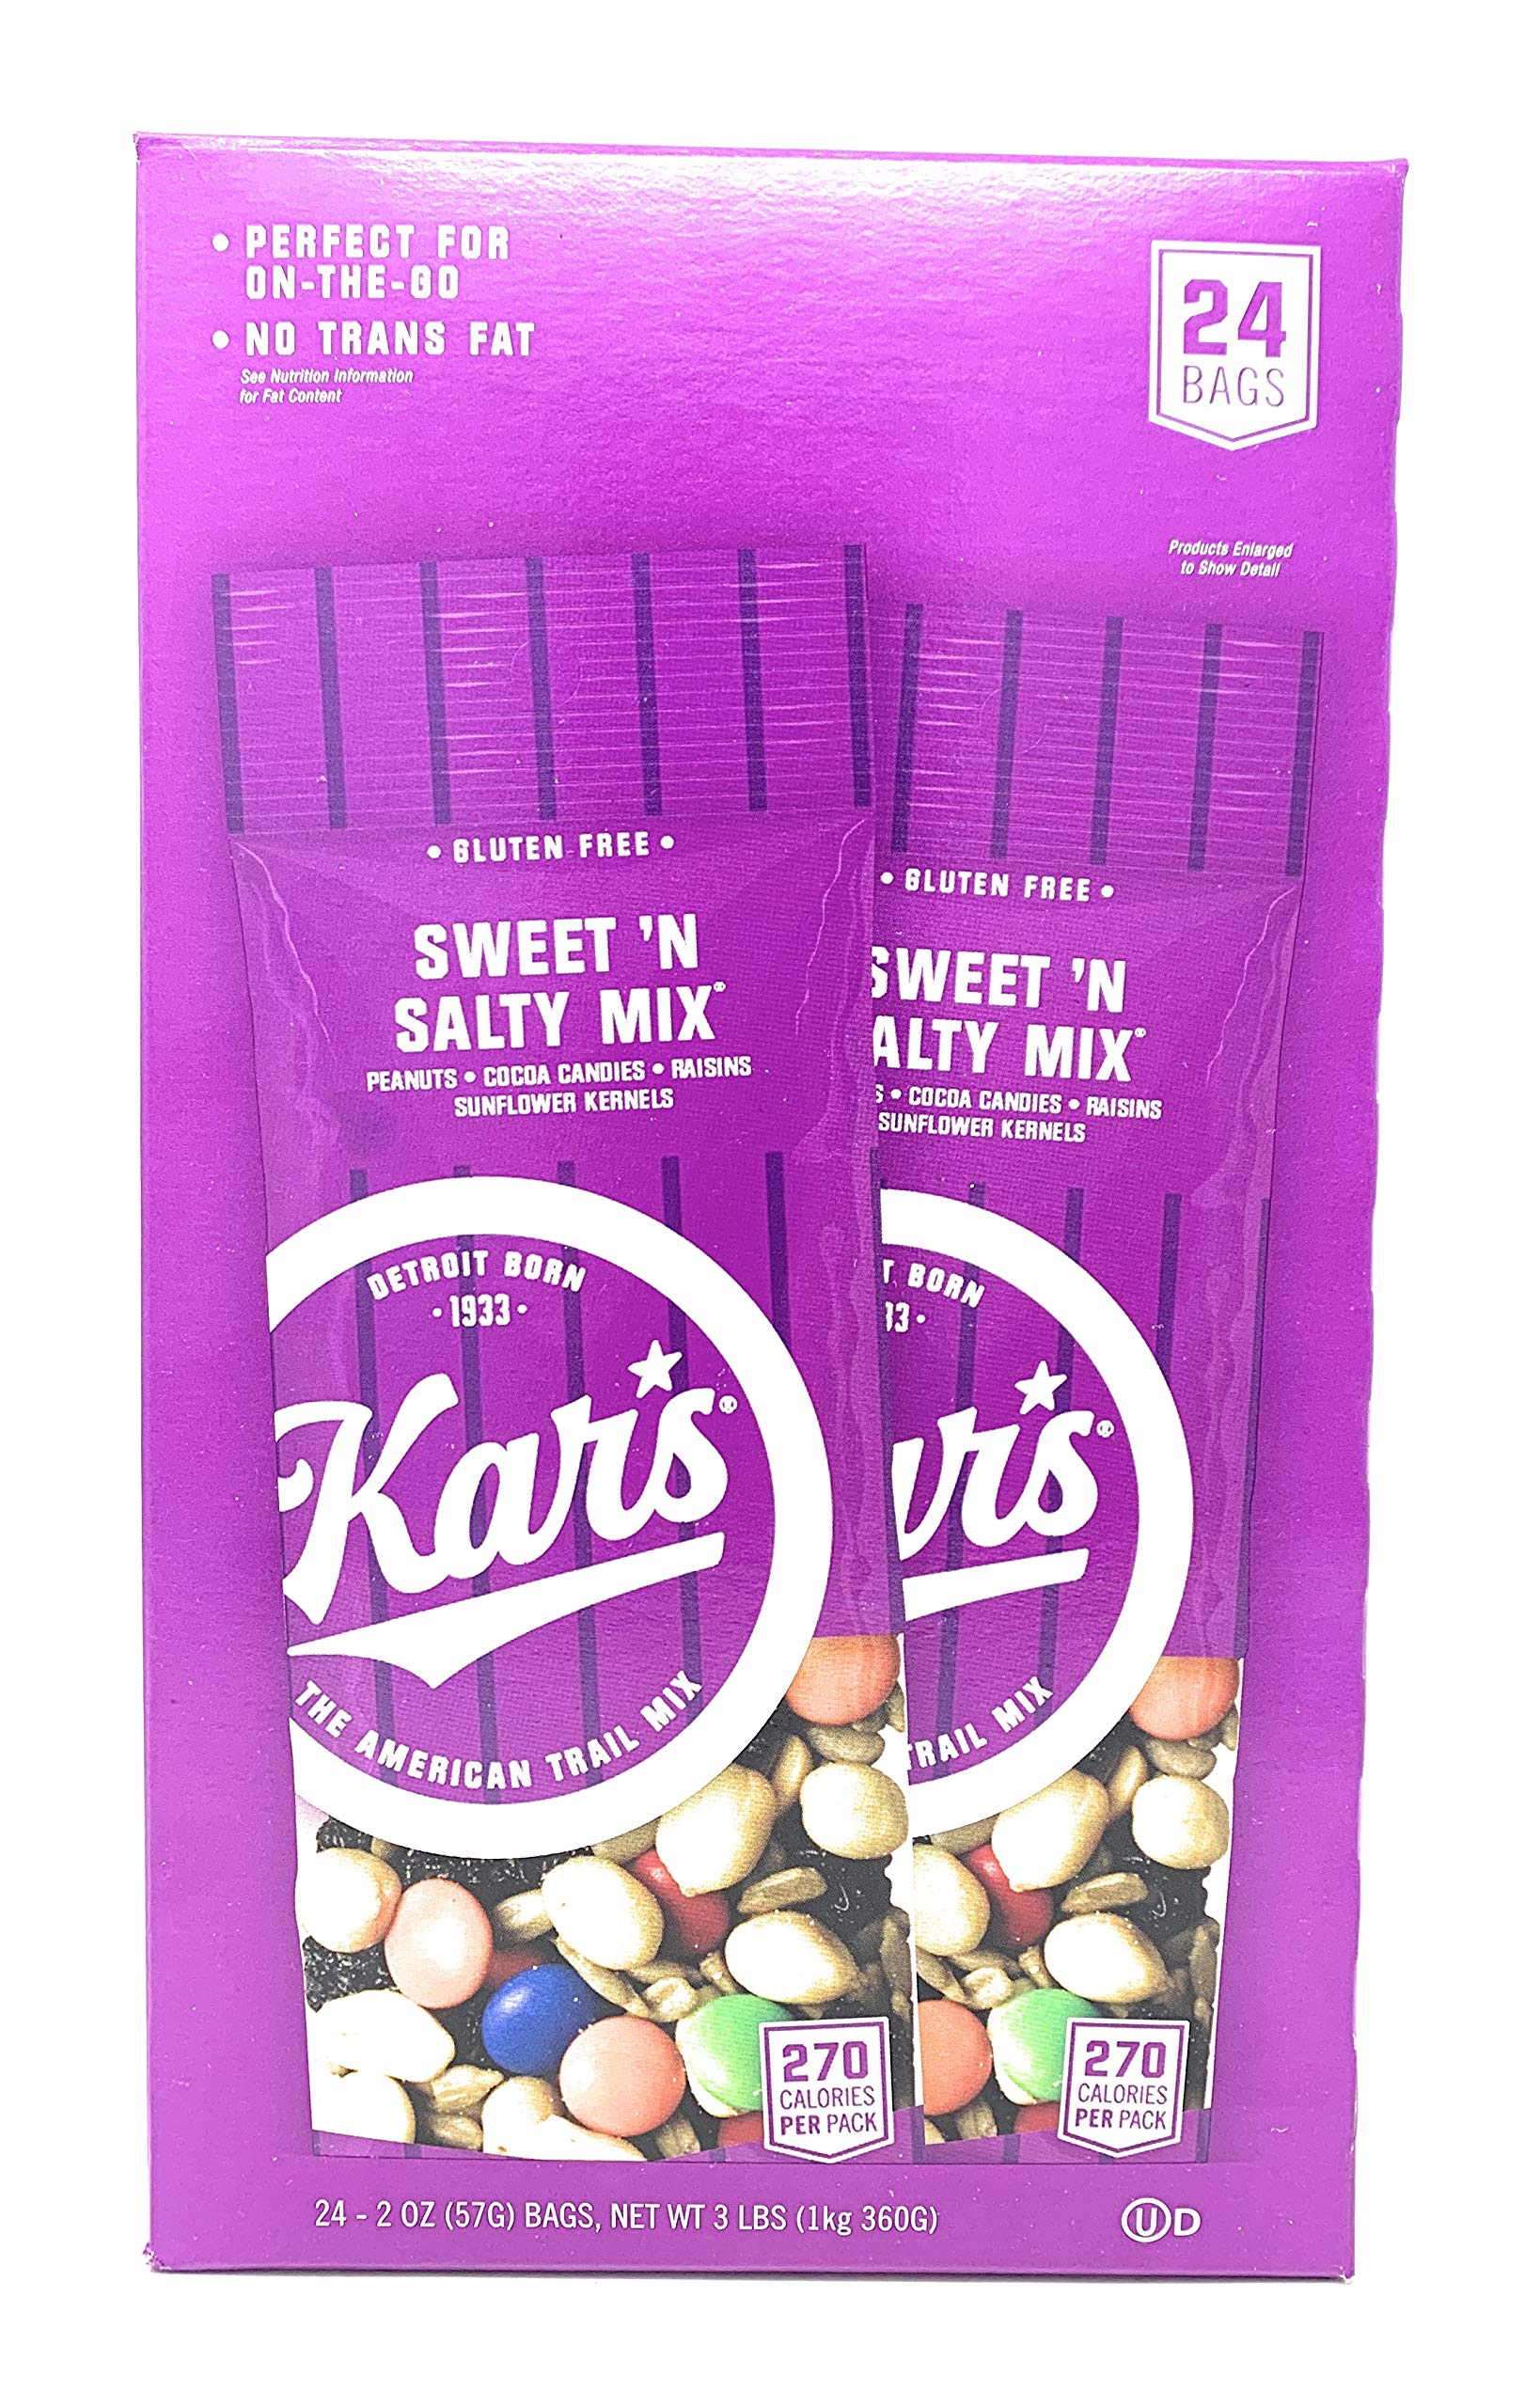 Kar's Sweet 'N Salty Mix, 2 Oz, Box of 24 Bags by Kars Products